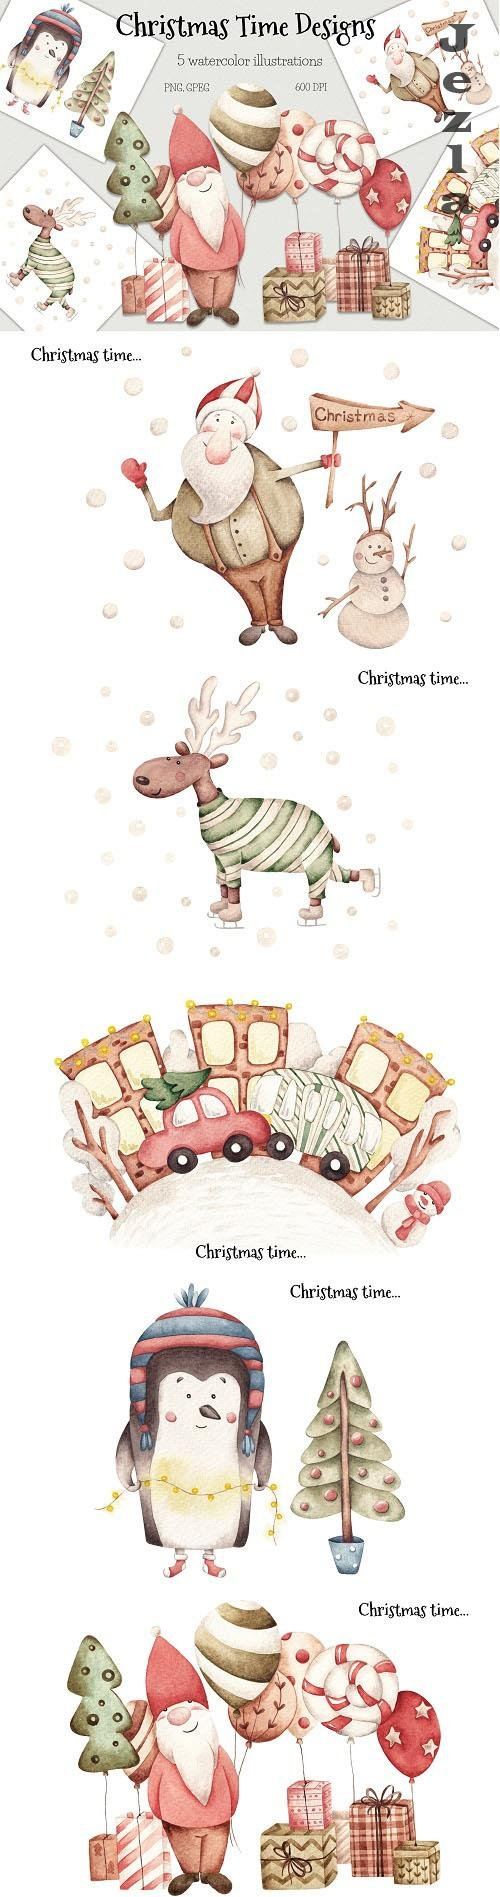 Watercolor Illustrations Christmas Time - 1602193